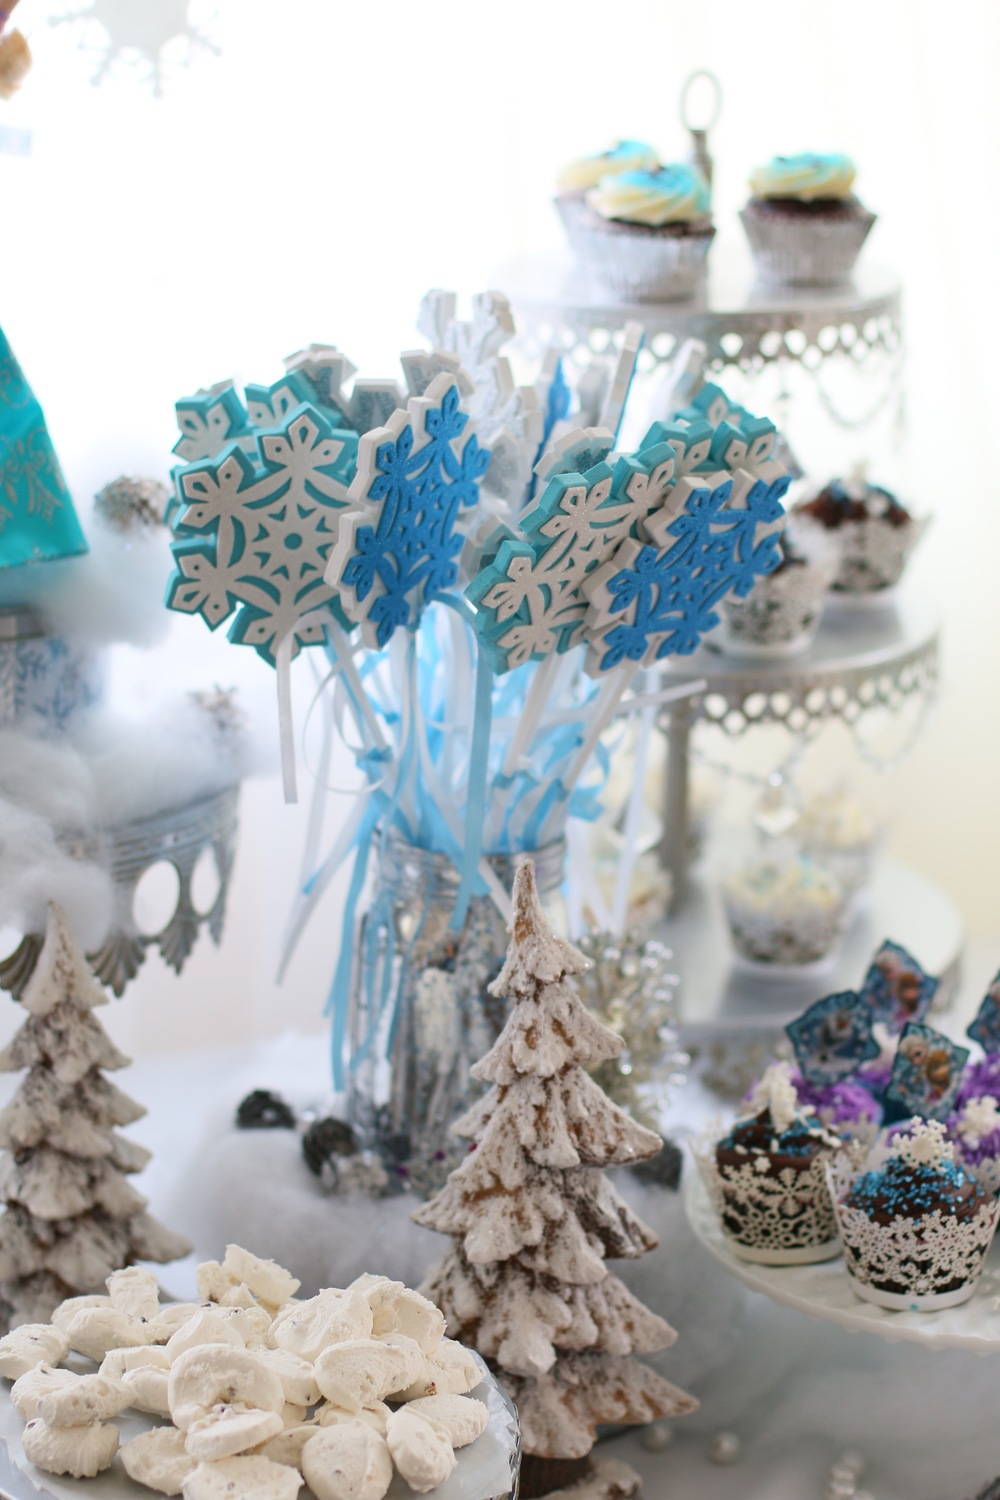 Party Favors - A great add on to our FROZEN rental package! @inJOYtheParty